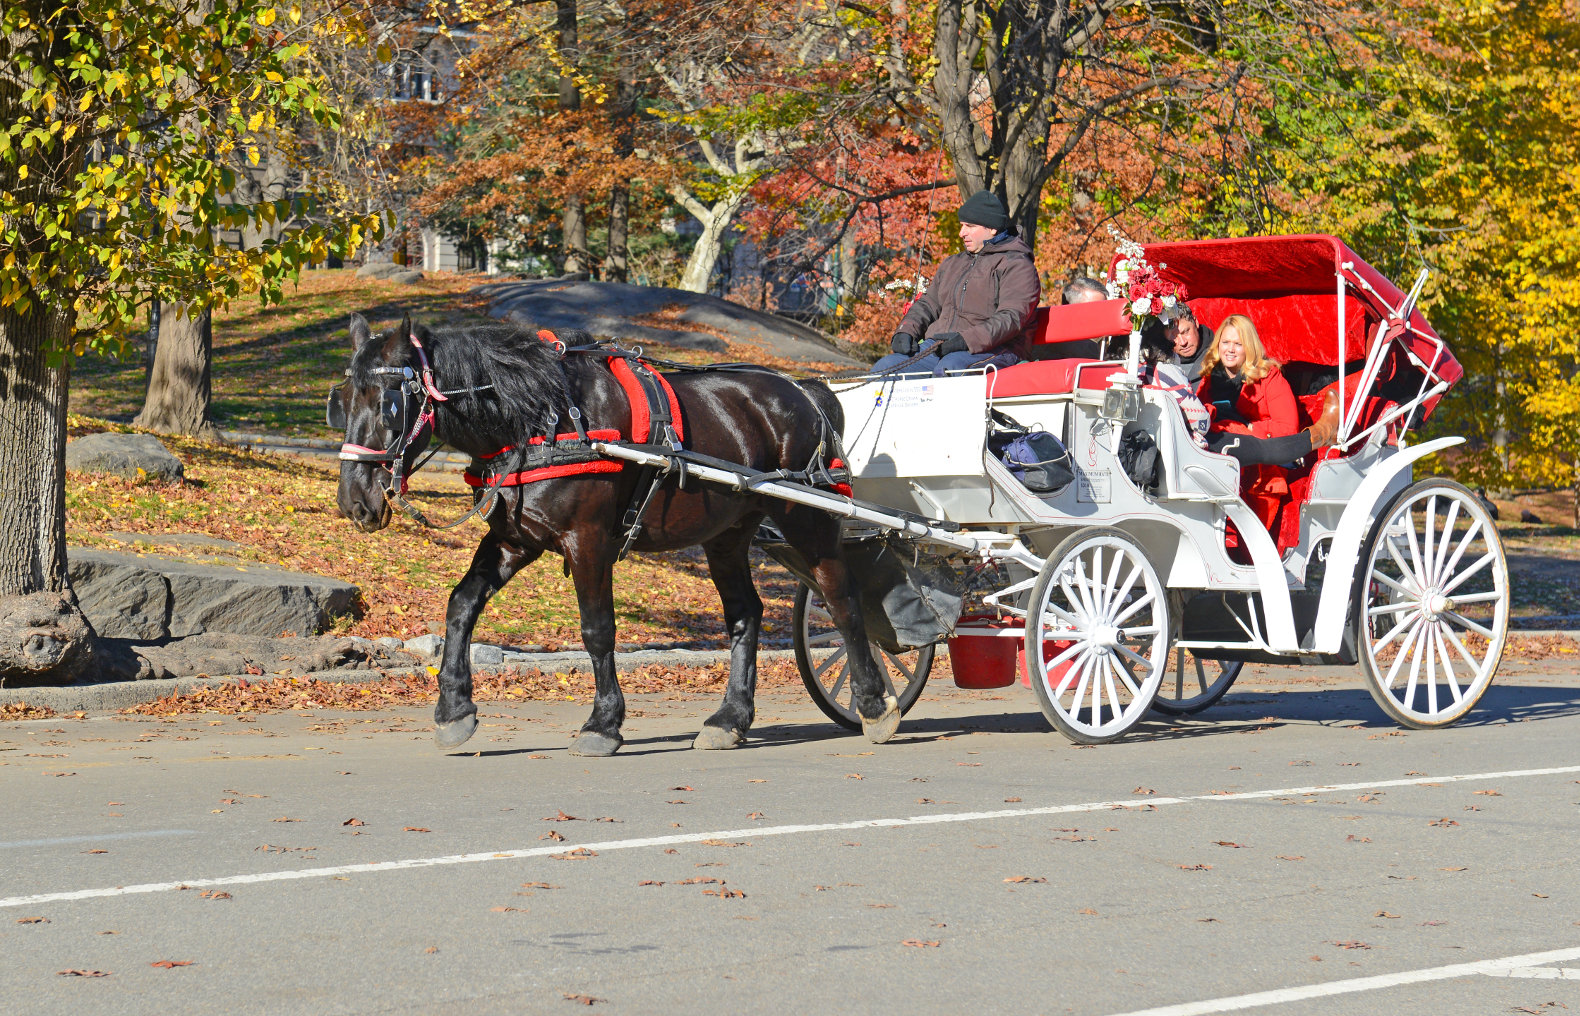 horse drawn carriage ride nyc central park inhabitat green design innovation architecture. Black Bedroom Furniture Sets. Home Design Ideas